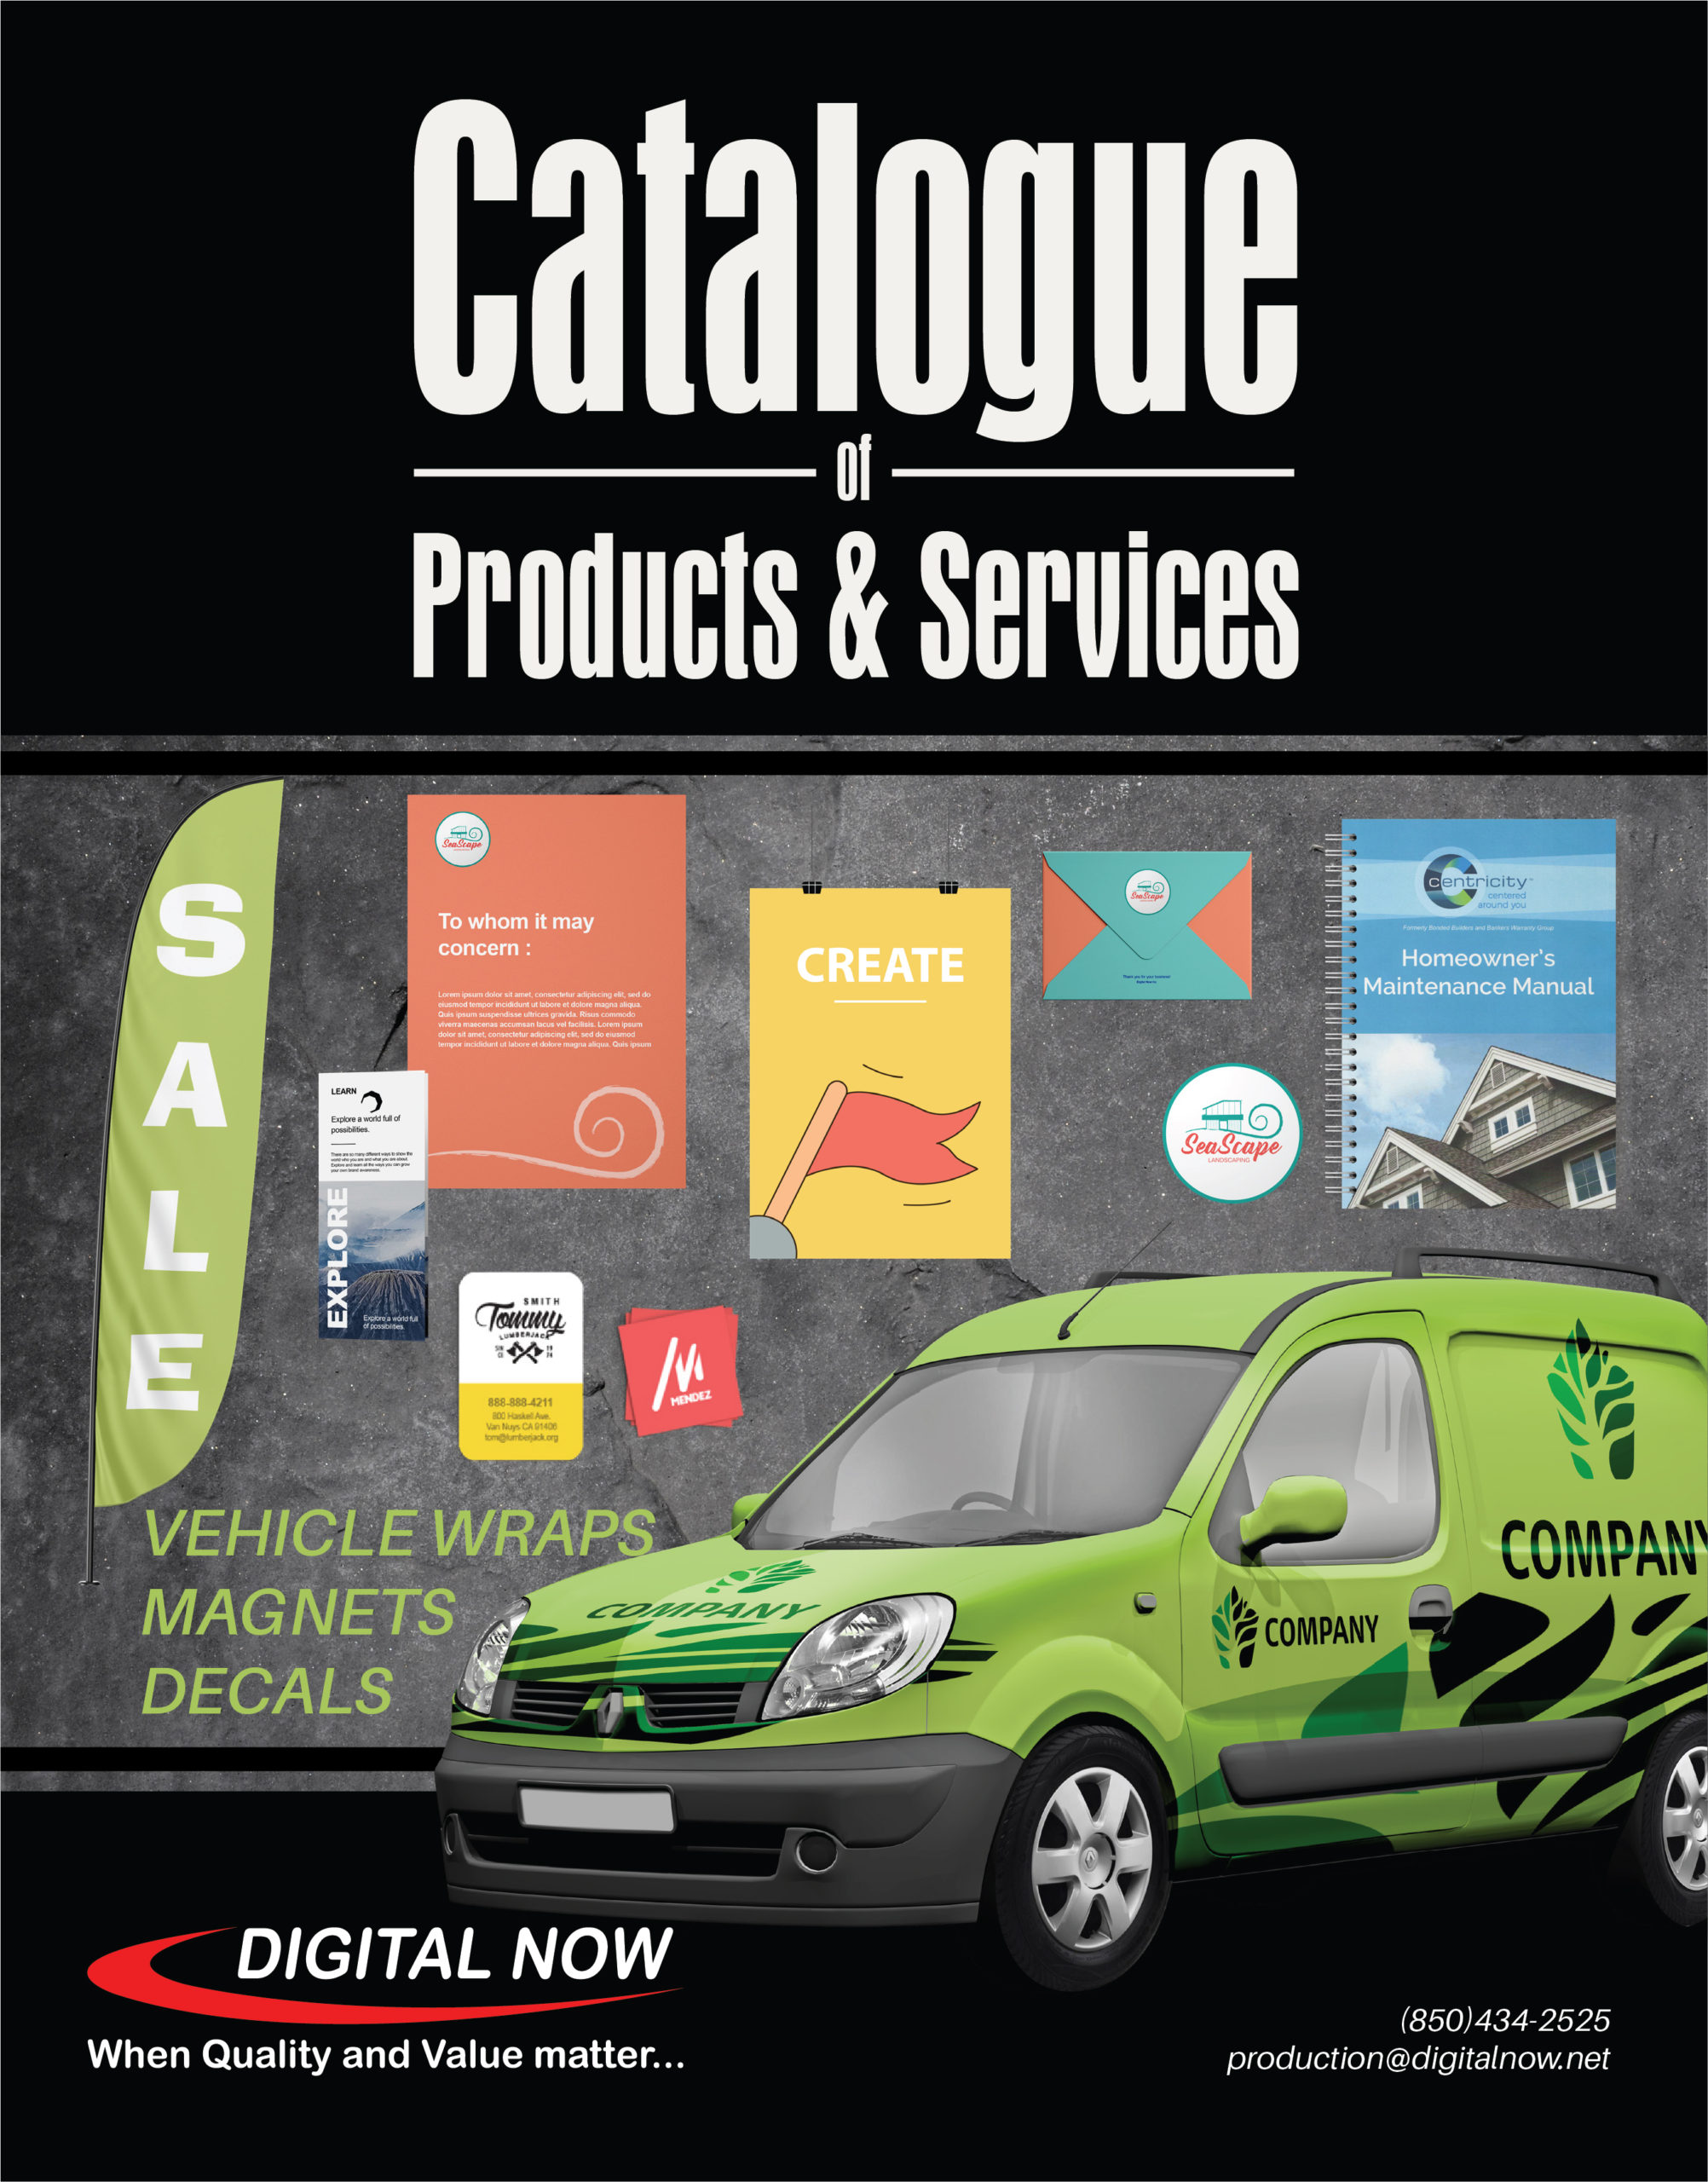 Catalogue cover featuring images of available products.